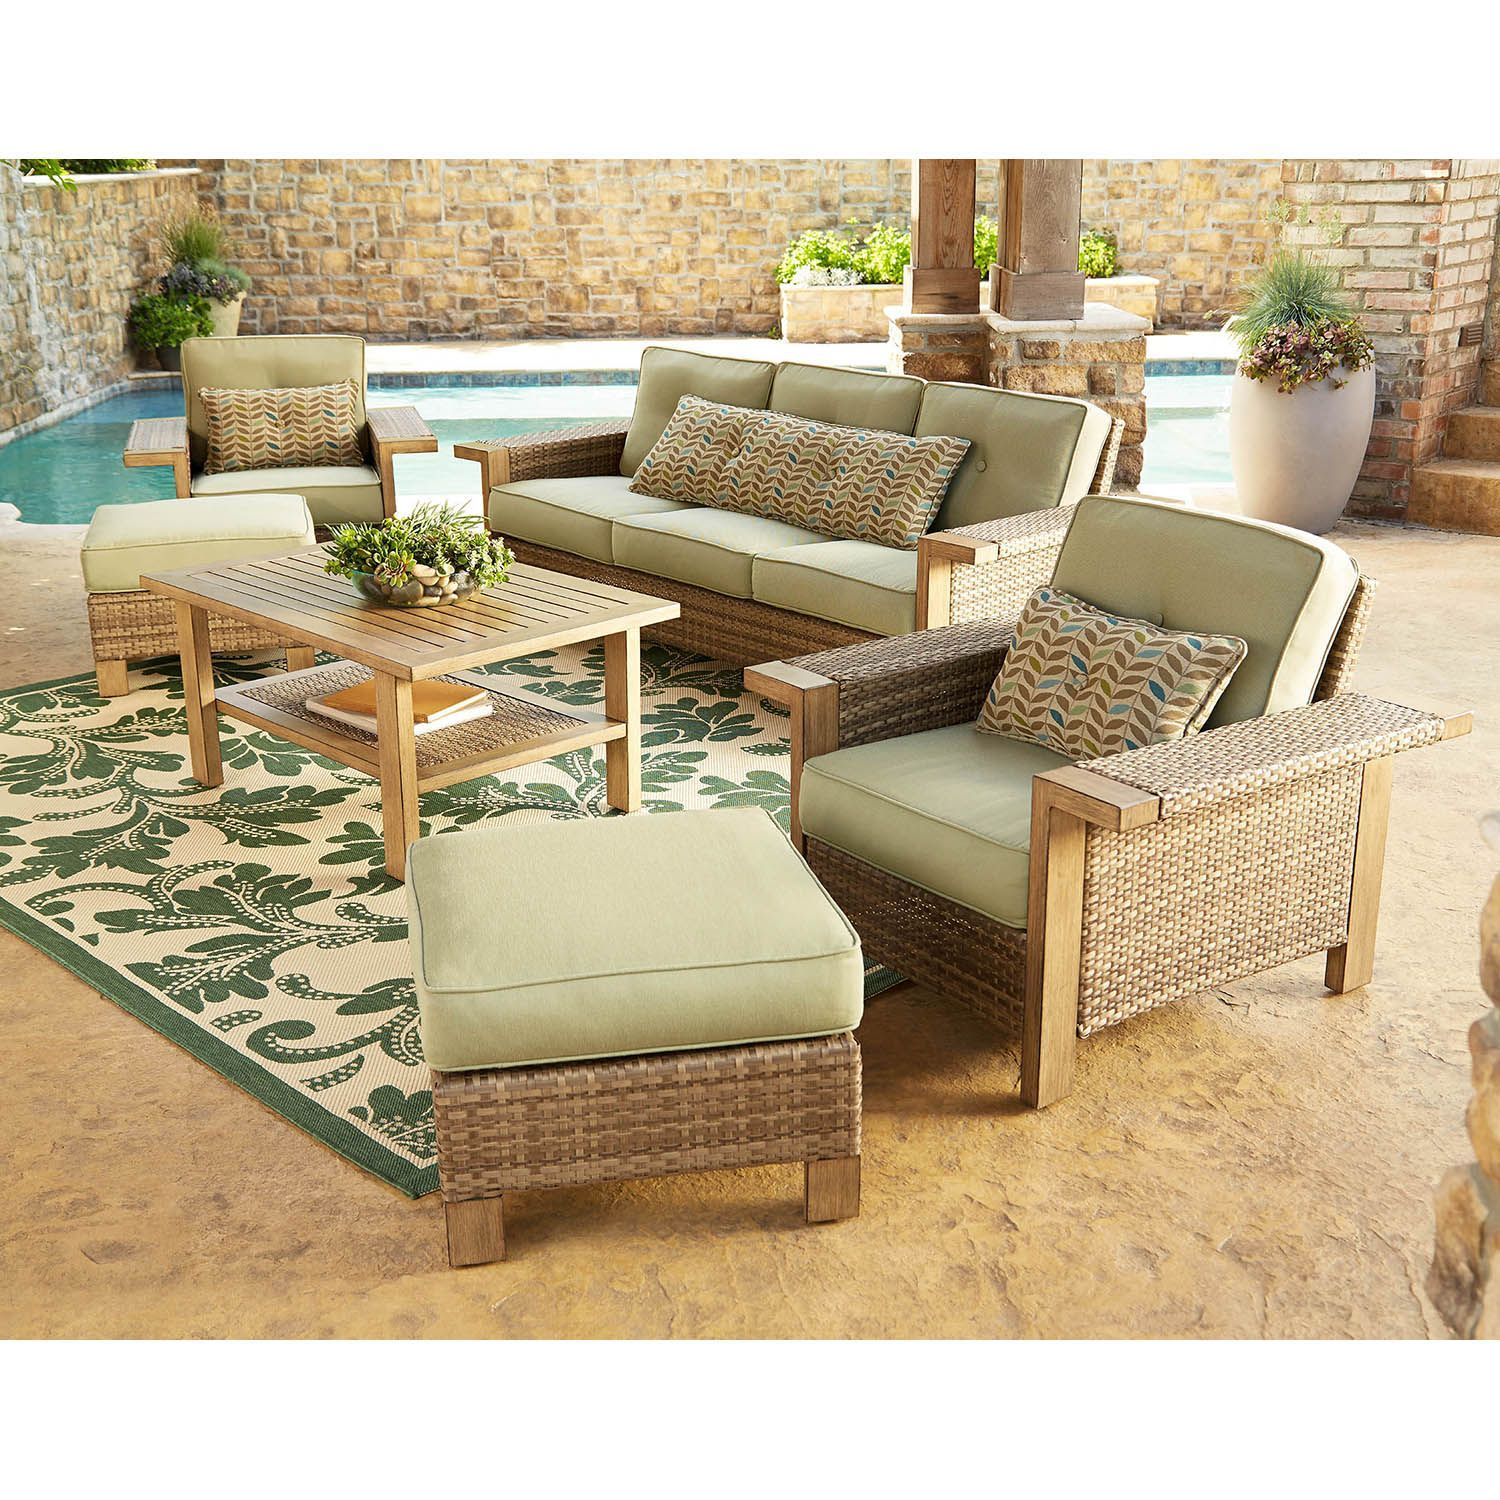 Manchester 6 Piece Deep Seating Set Modern Outdoor Lounge